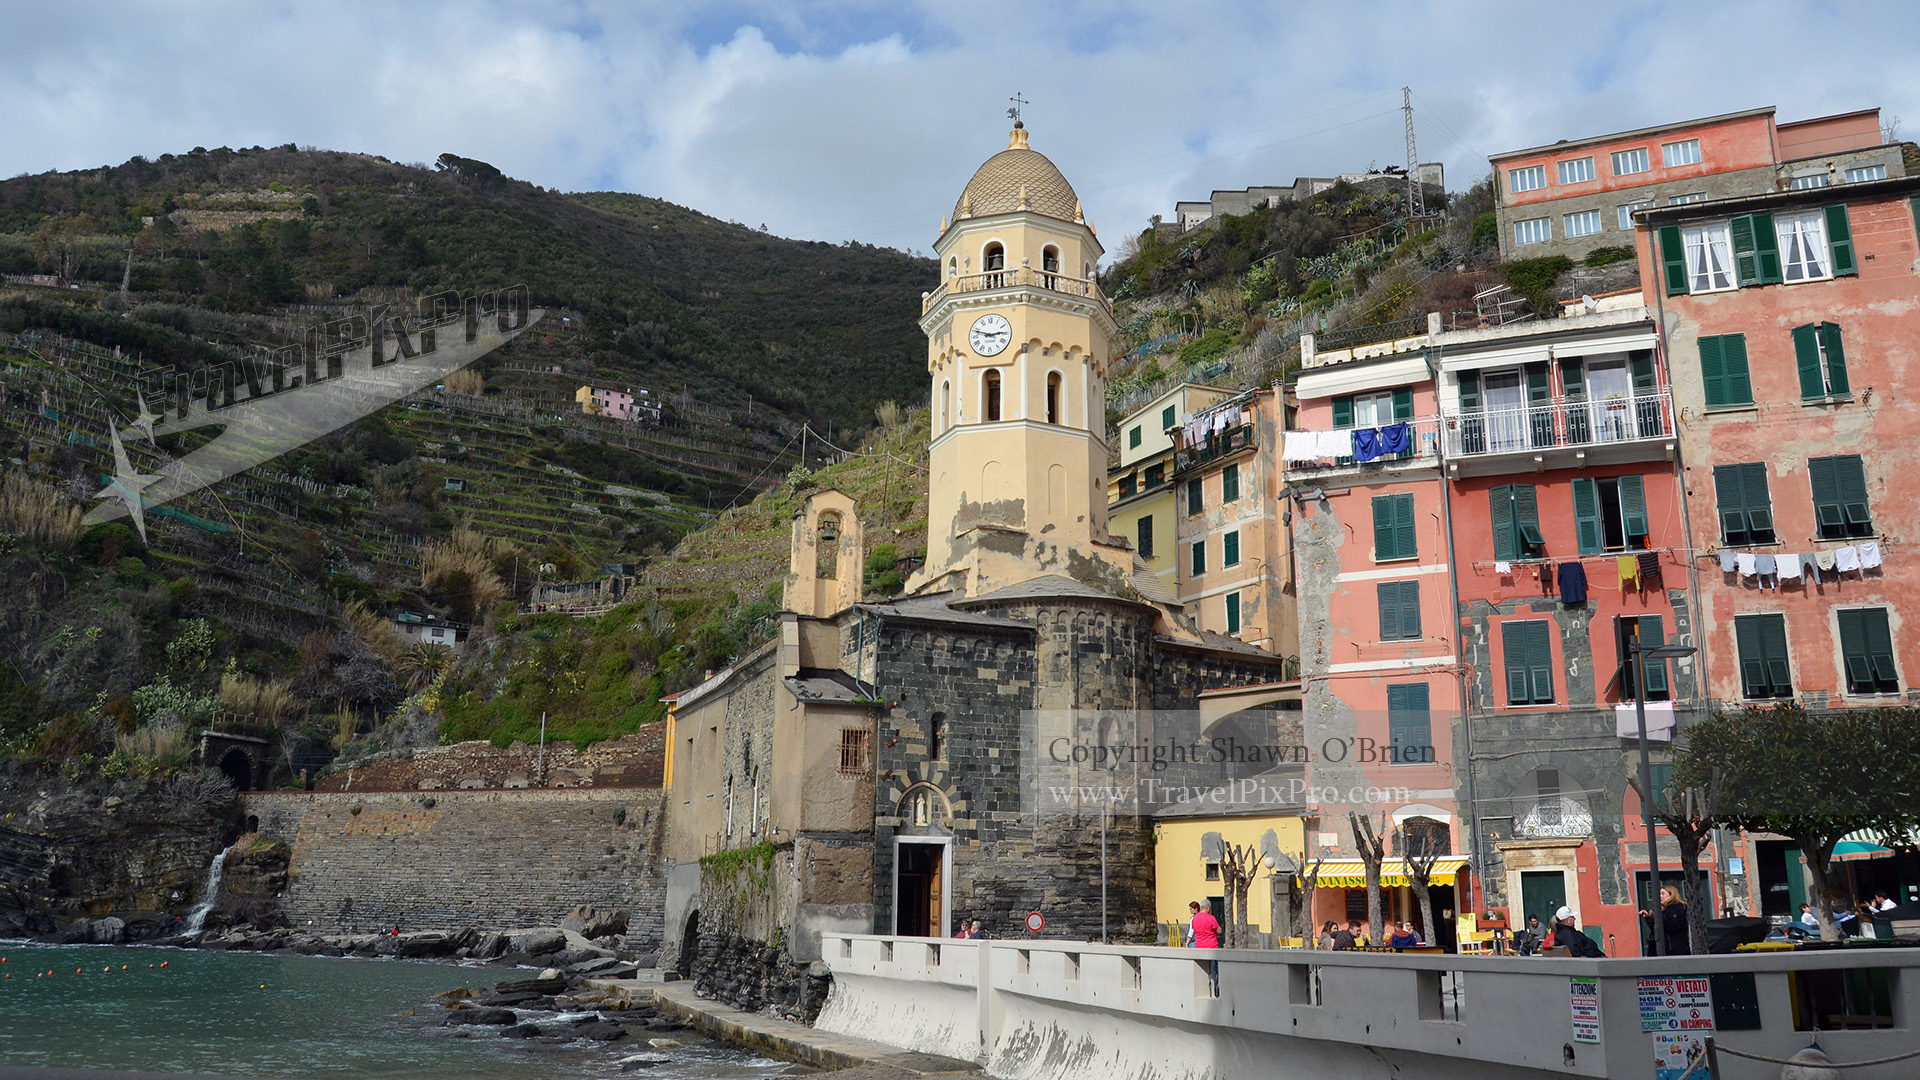 Vernazza Harbor and Church Scene